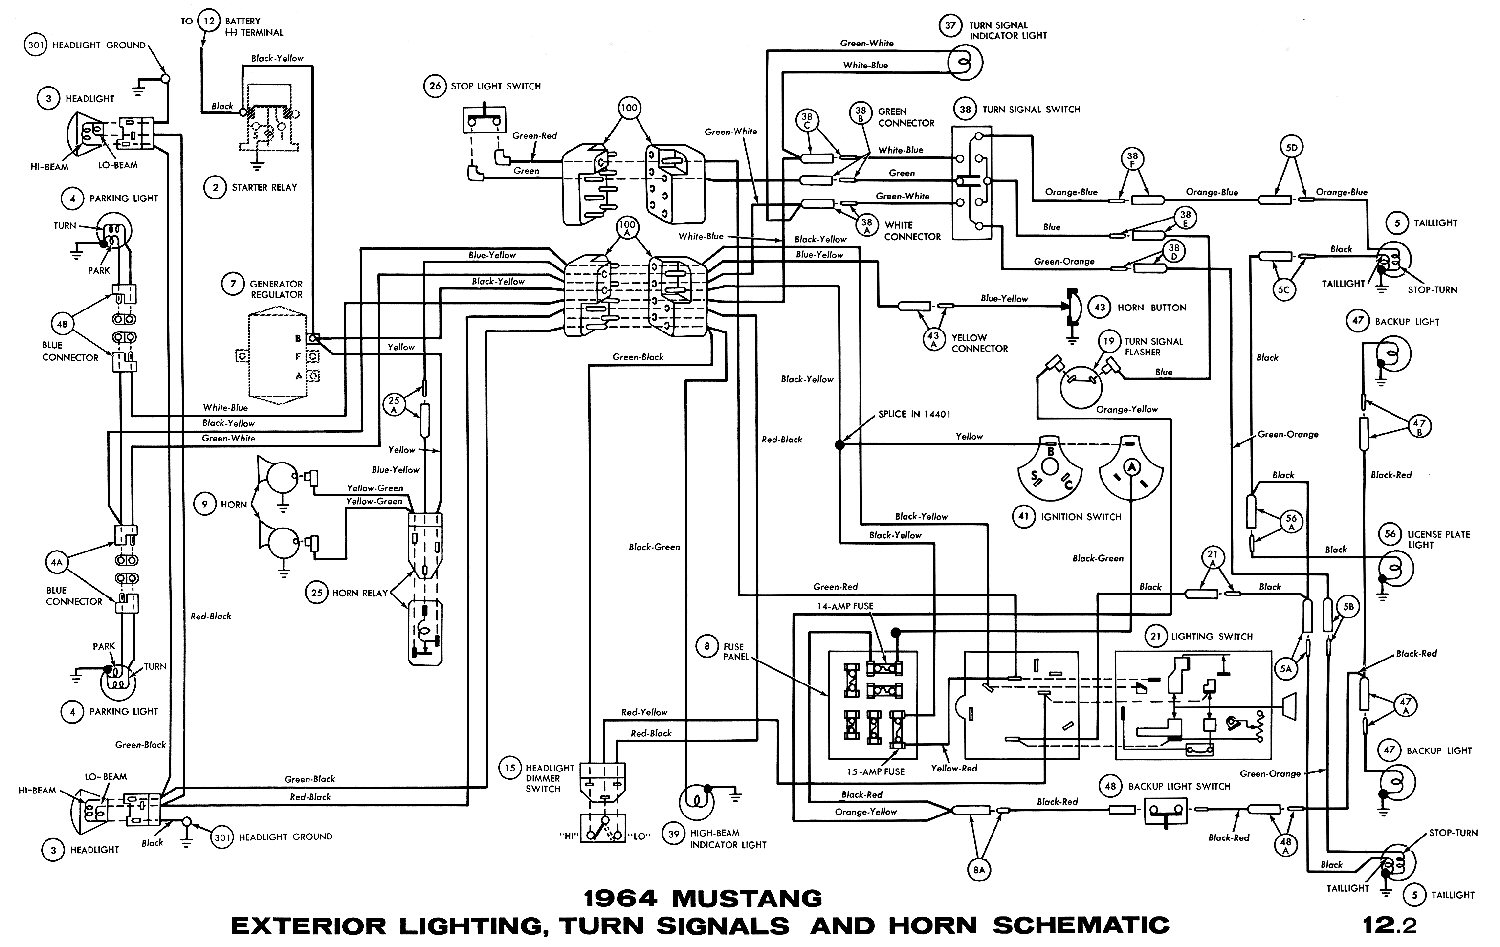 1964i 2015 mustang wiring diagram schematic mustang 2015 \u2022 free wiring mustang wiring diagrams at nearapp.co